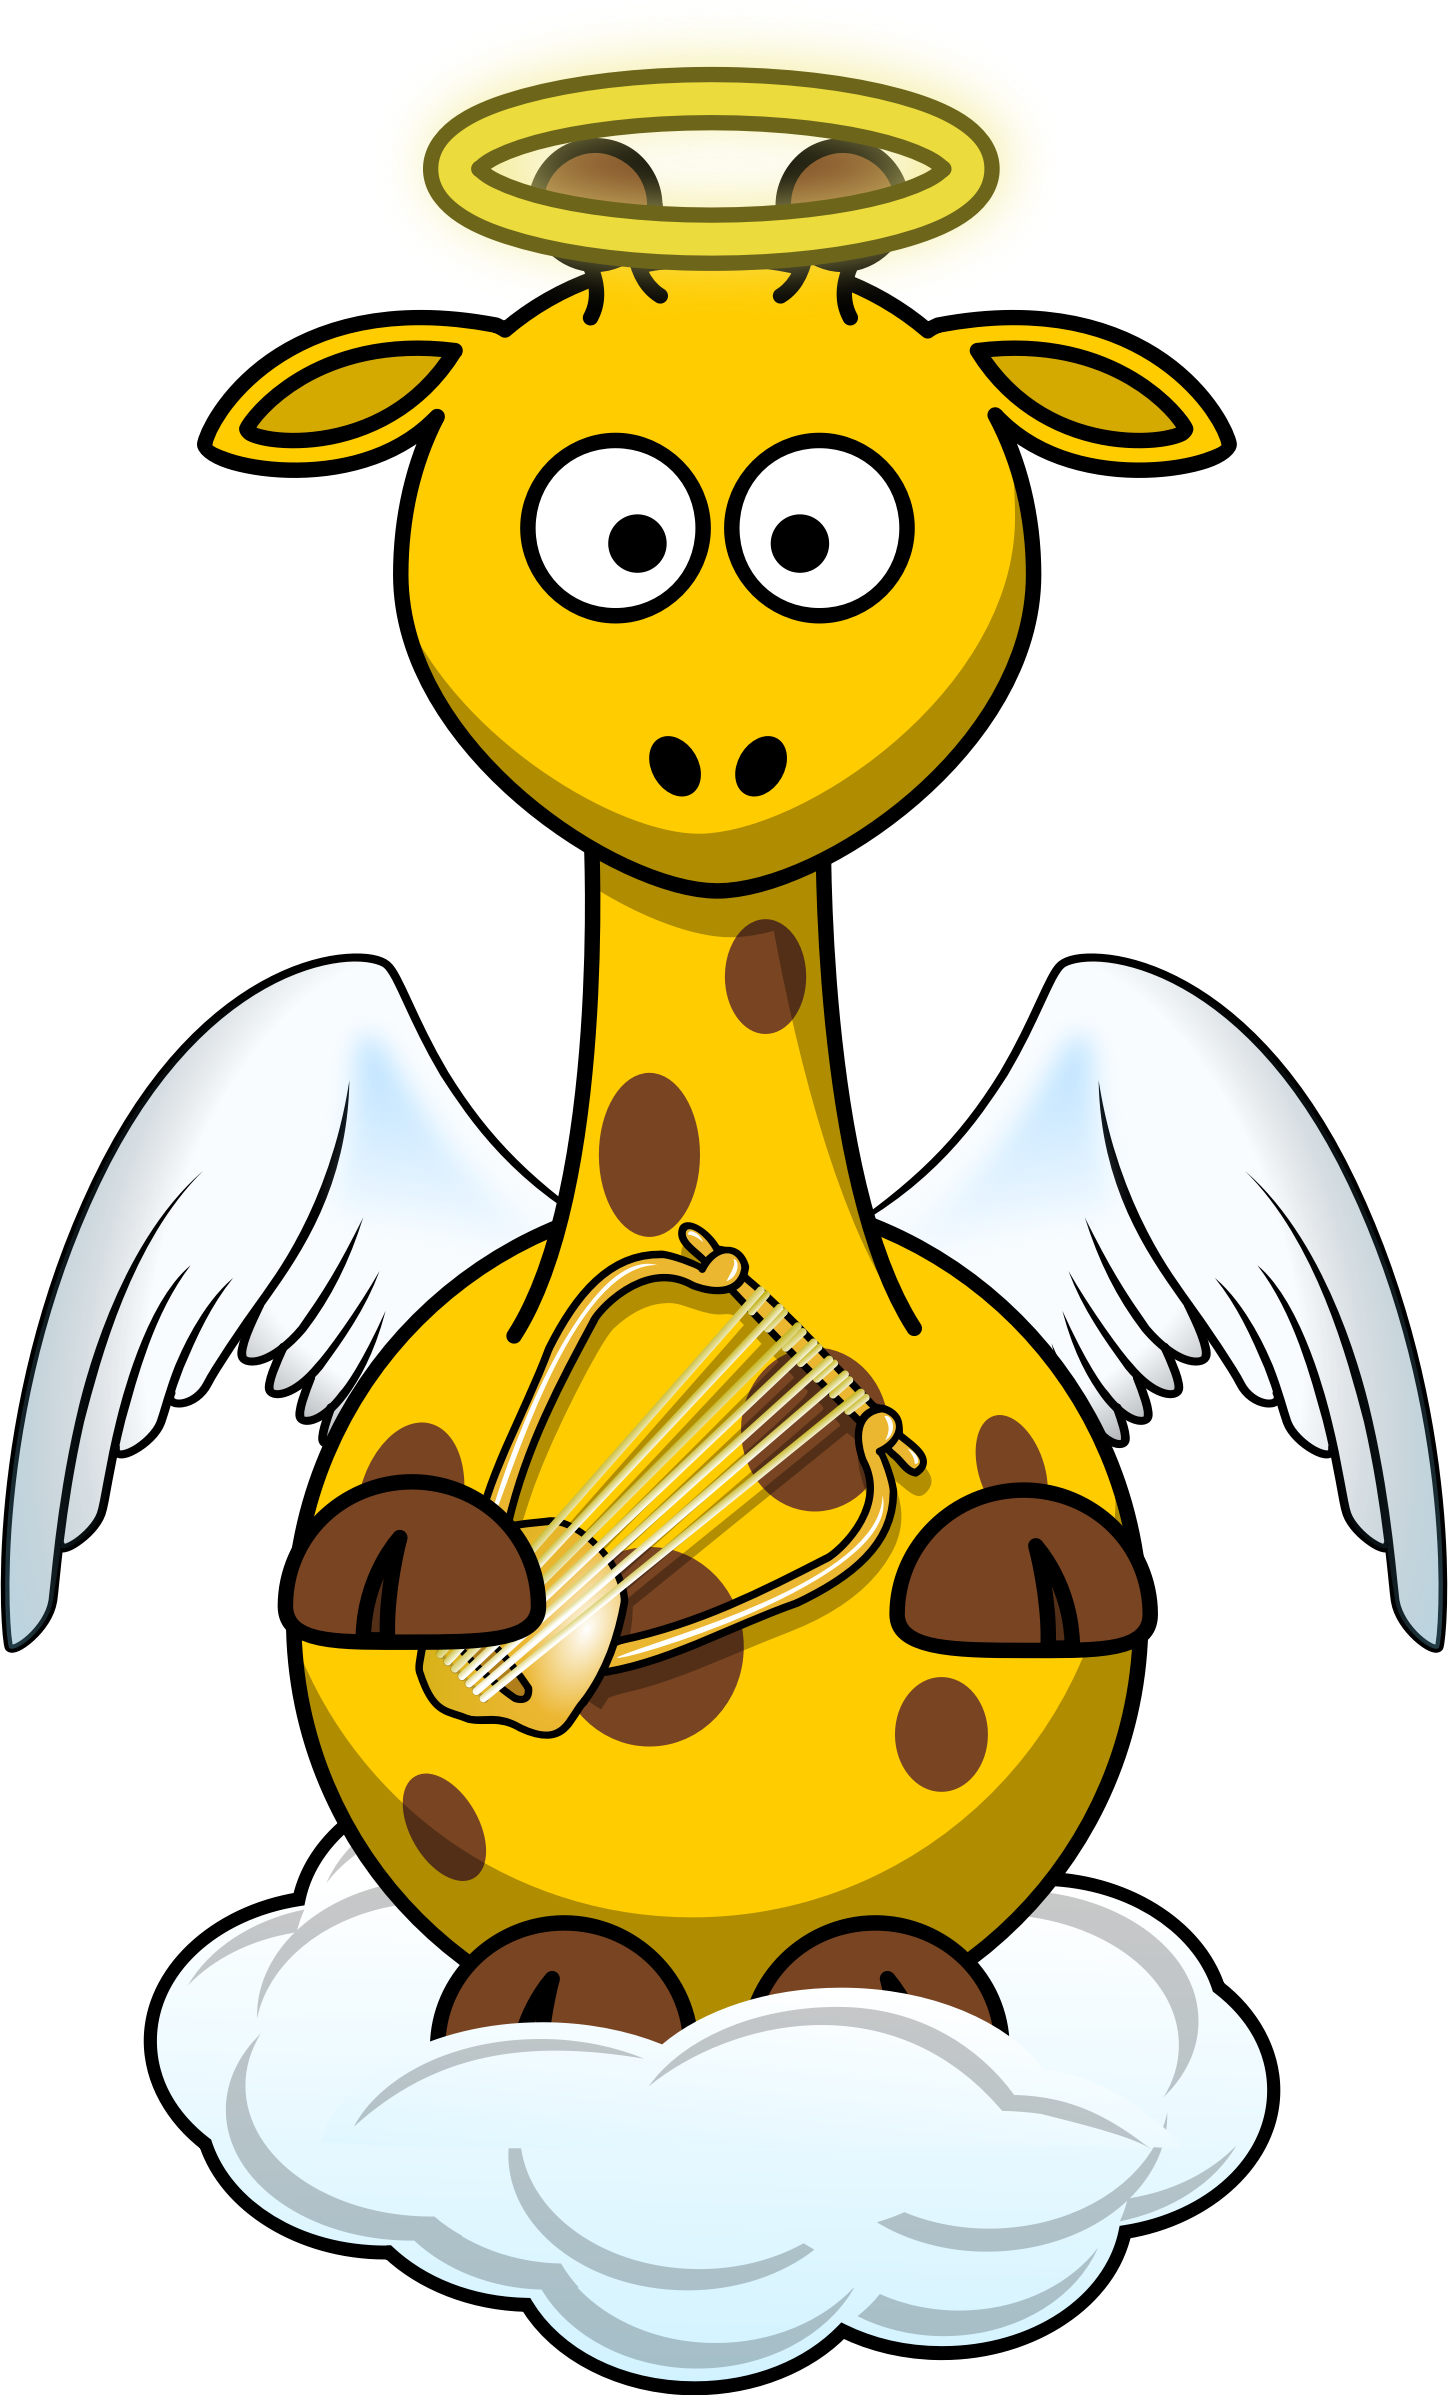 Giraffe Angel by Bingenberg